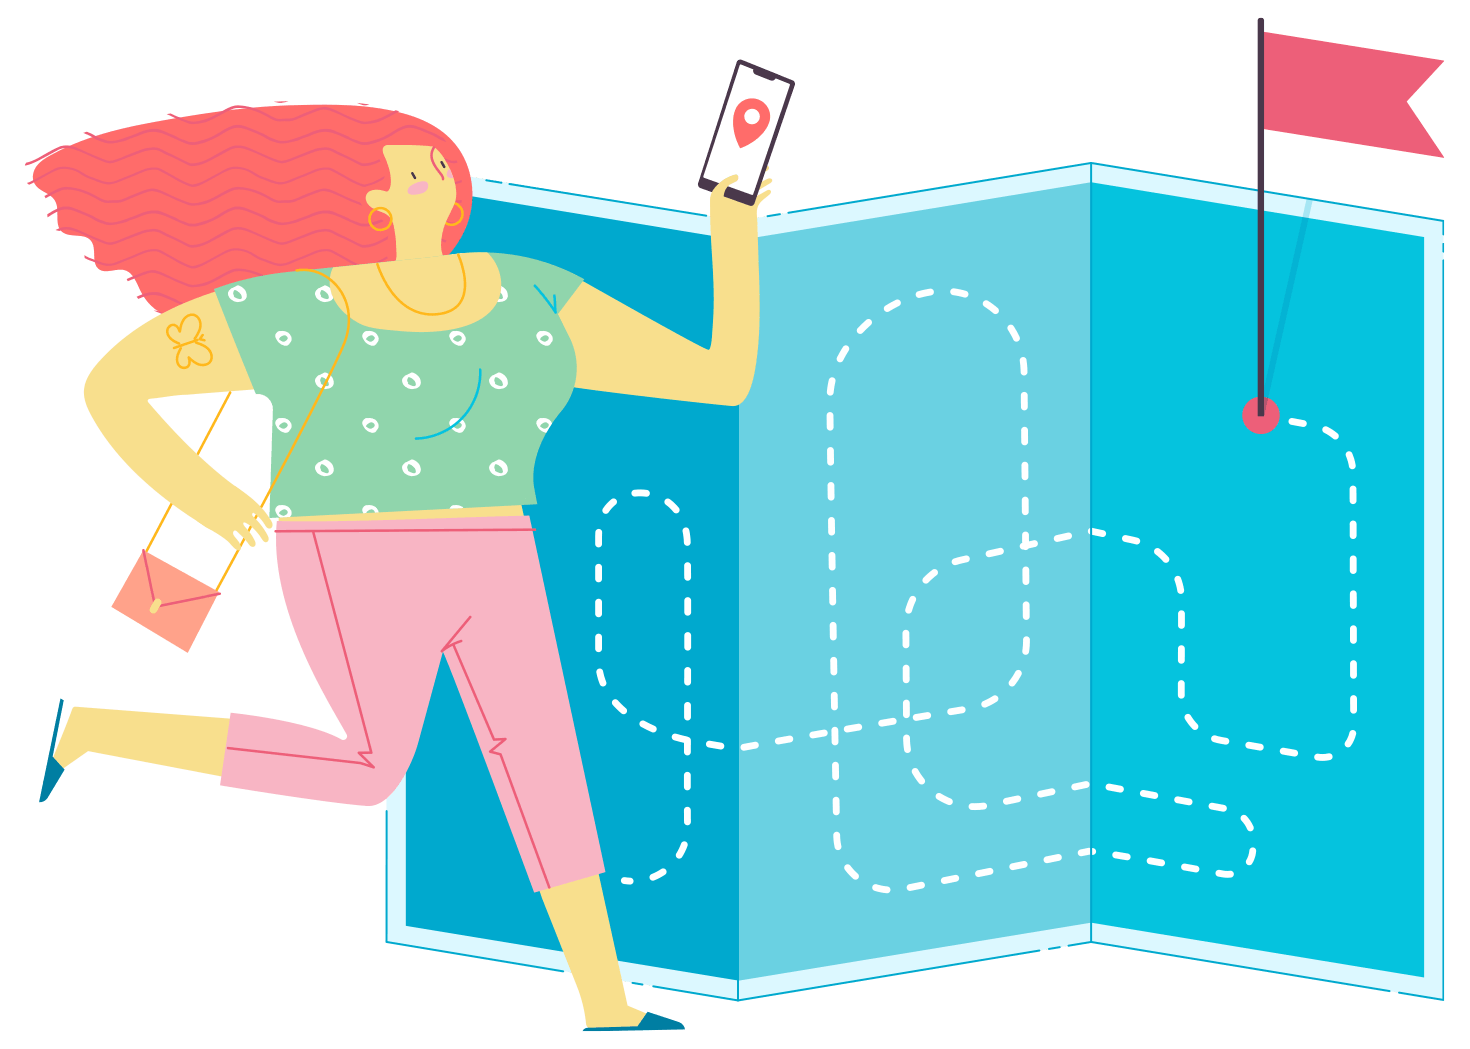 Illustration of a person using a mobile phone to navigate to a destination, which is displayed on an oversized map behind them.